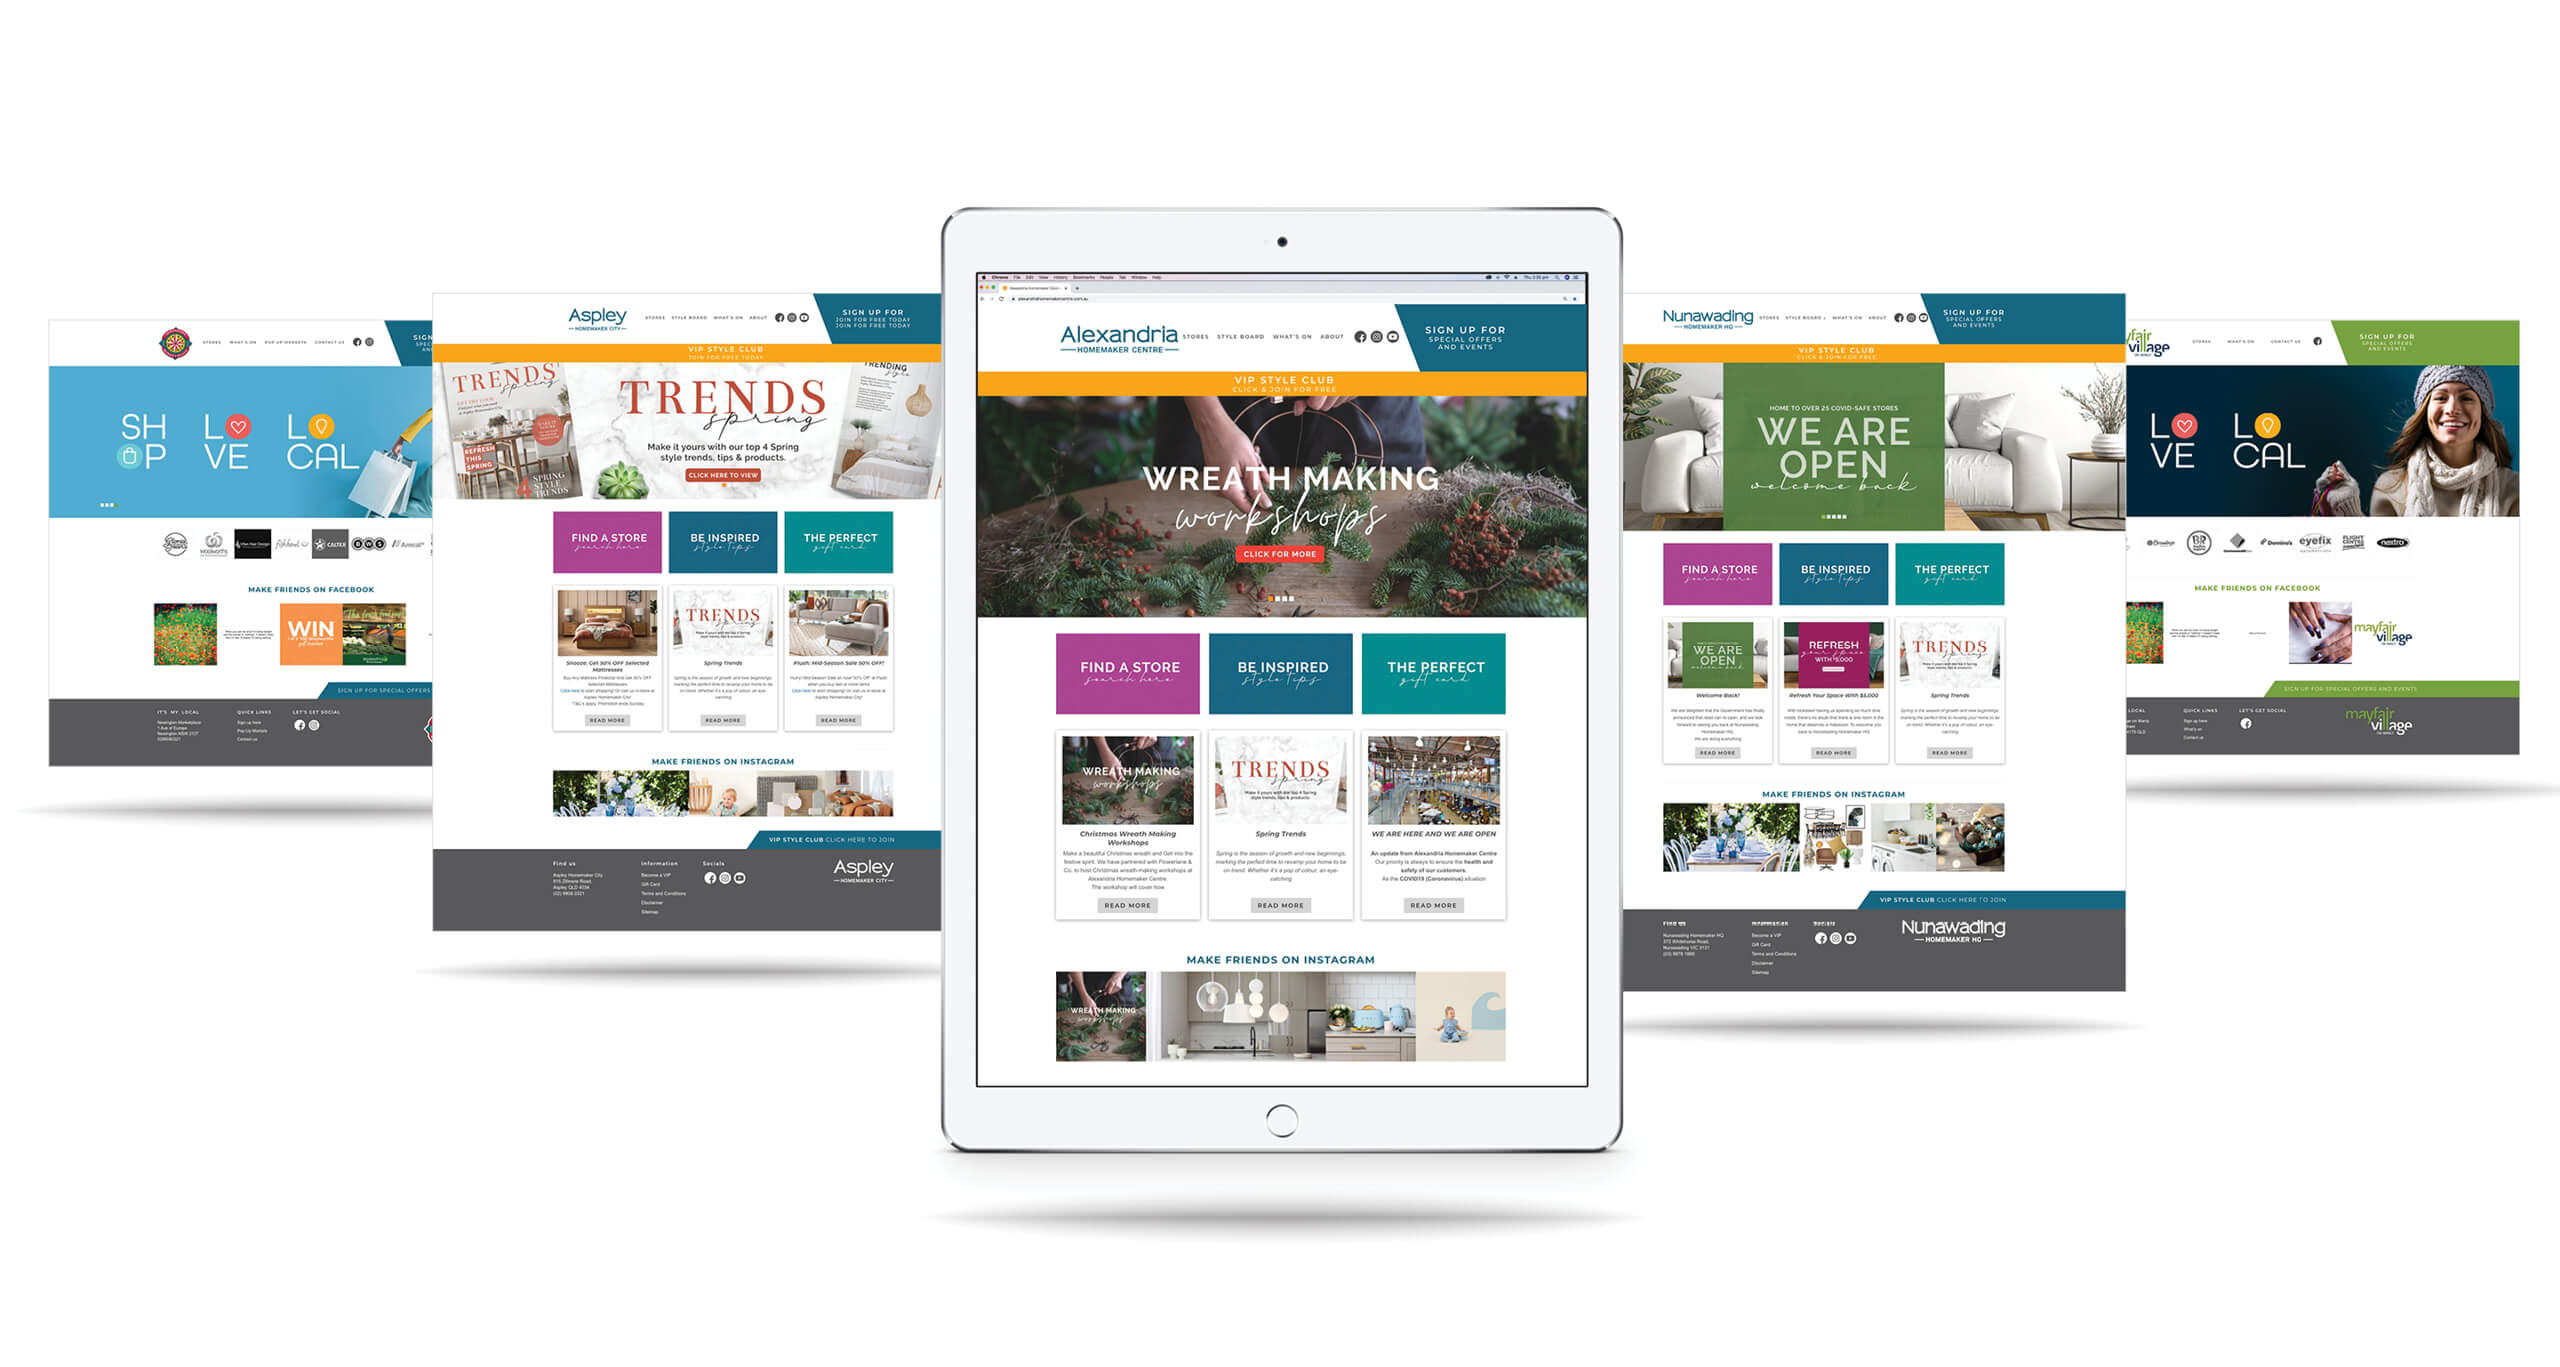 design-and-marketing-arkadia-website-rollout